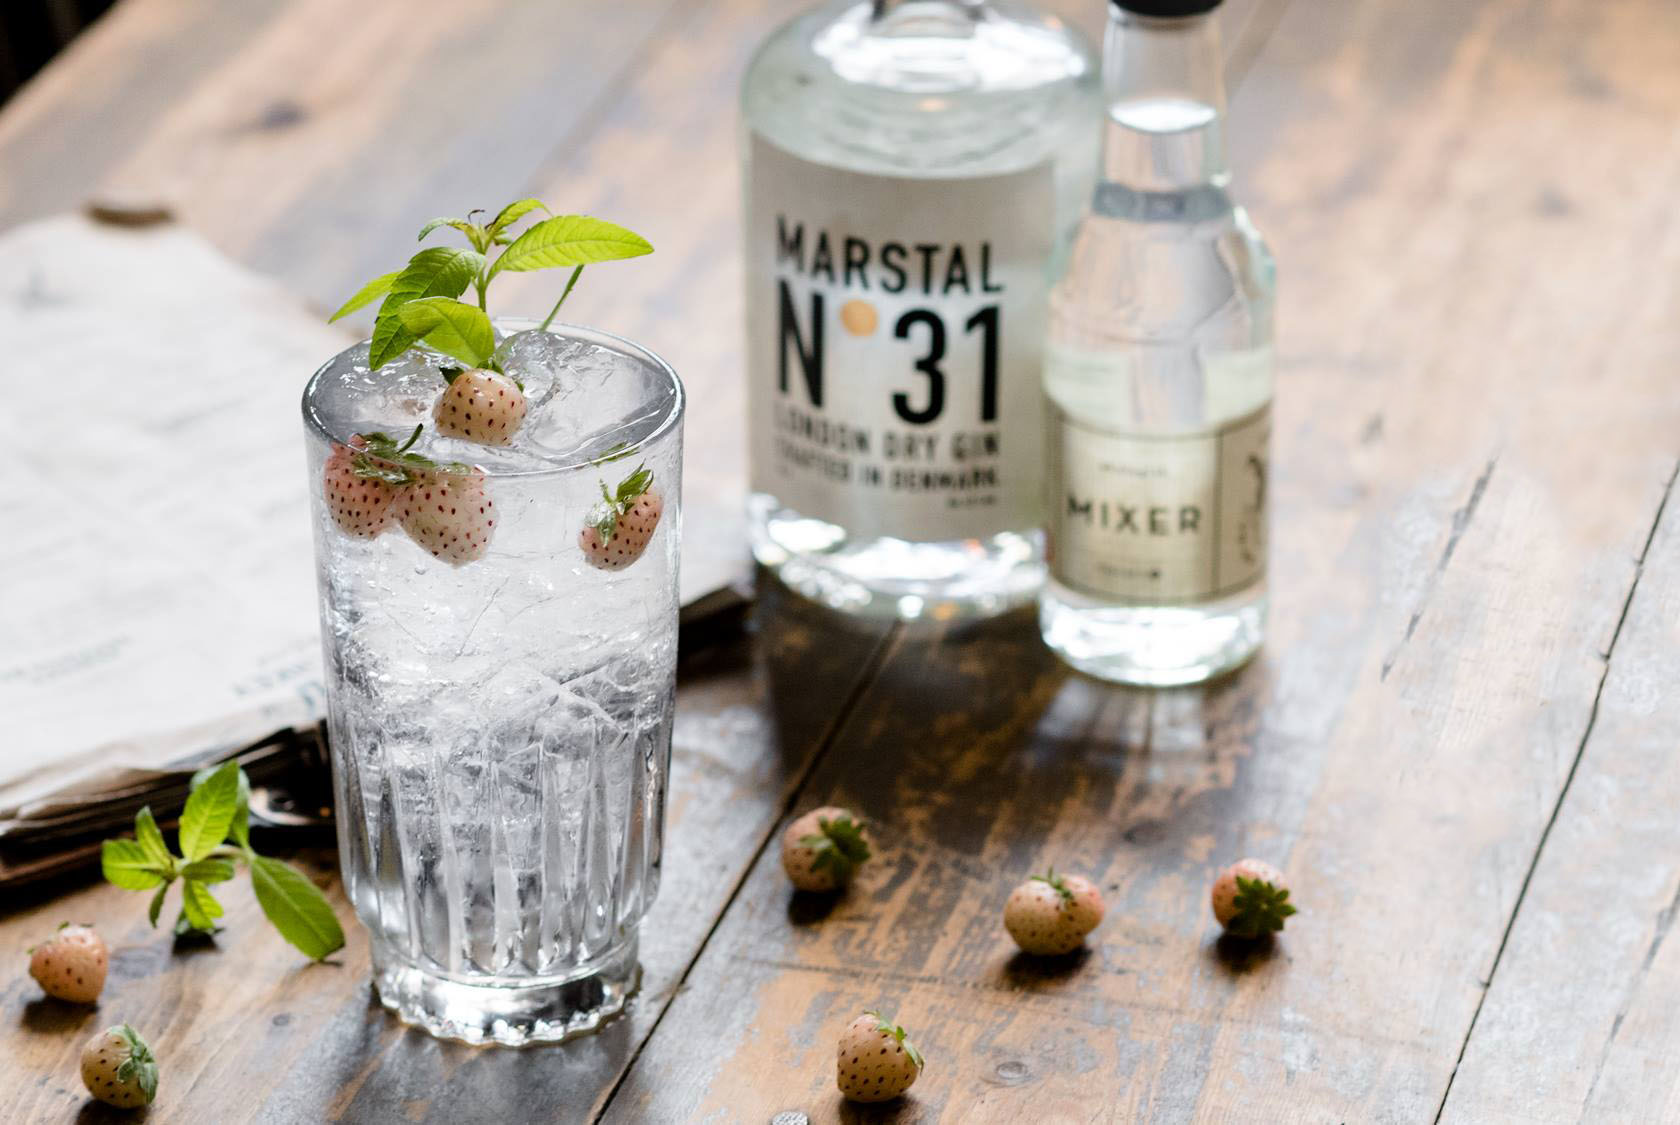 Marstal No. 31 - Our favorite cocktails